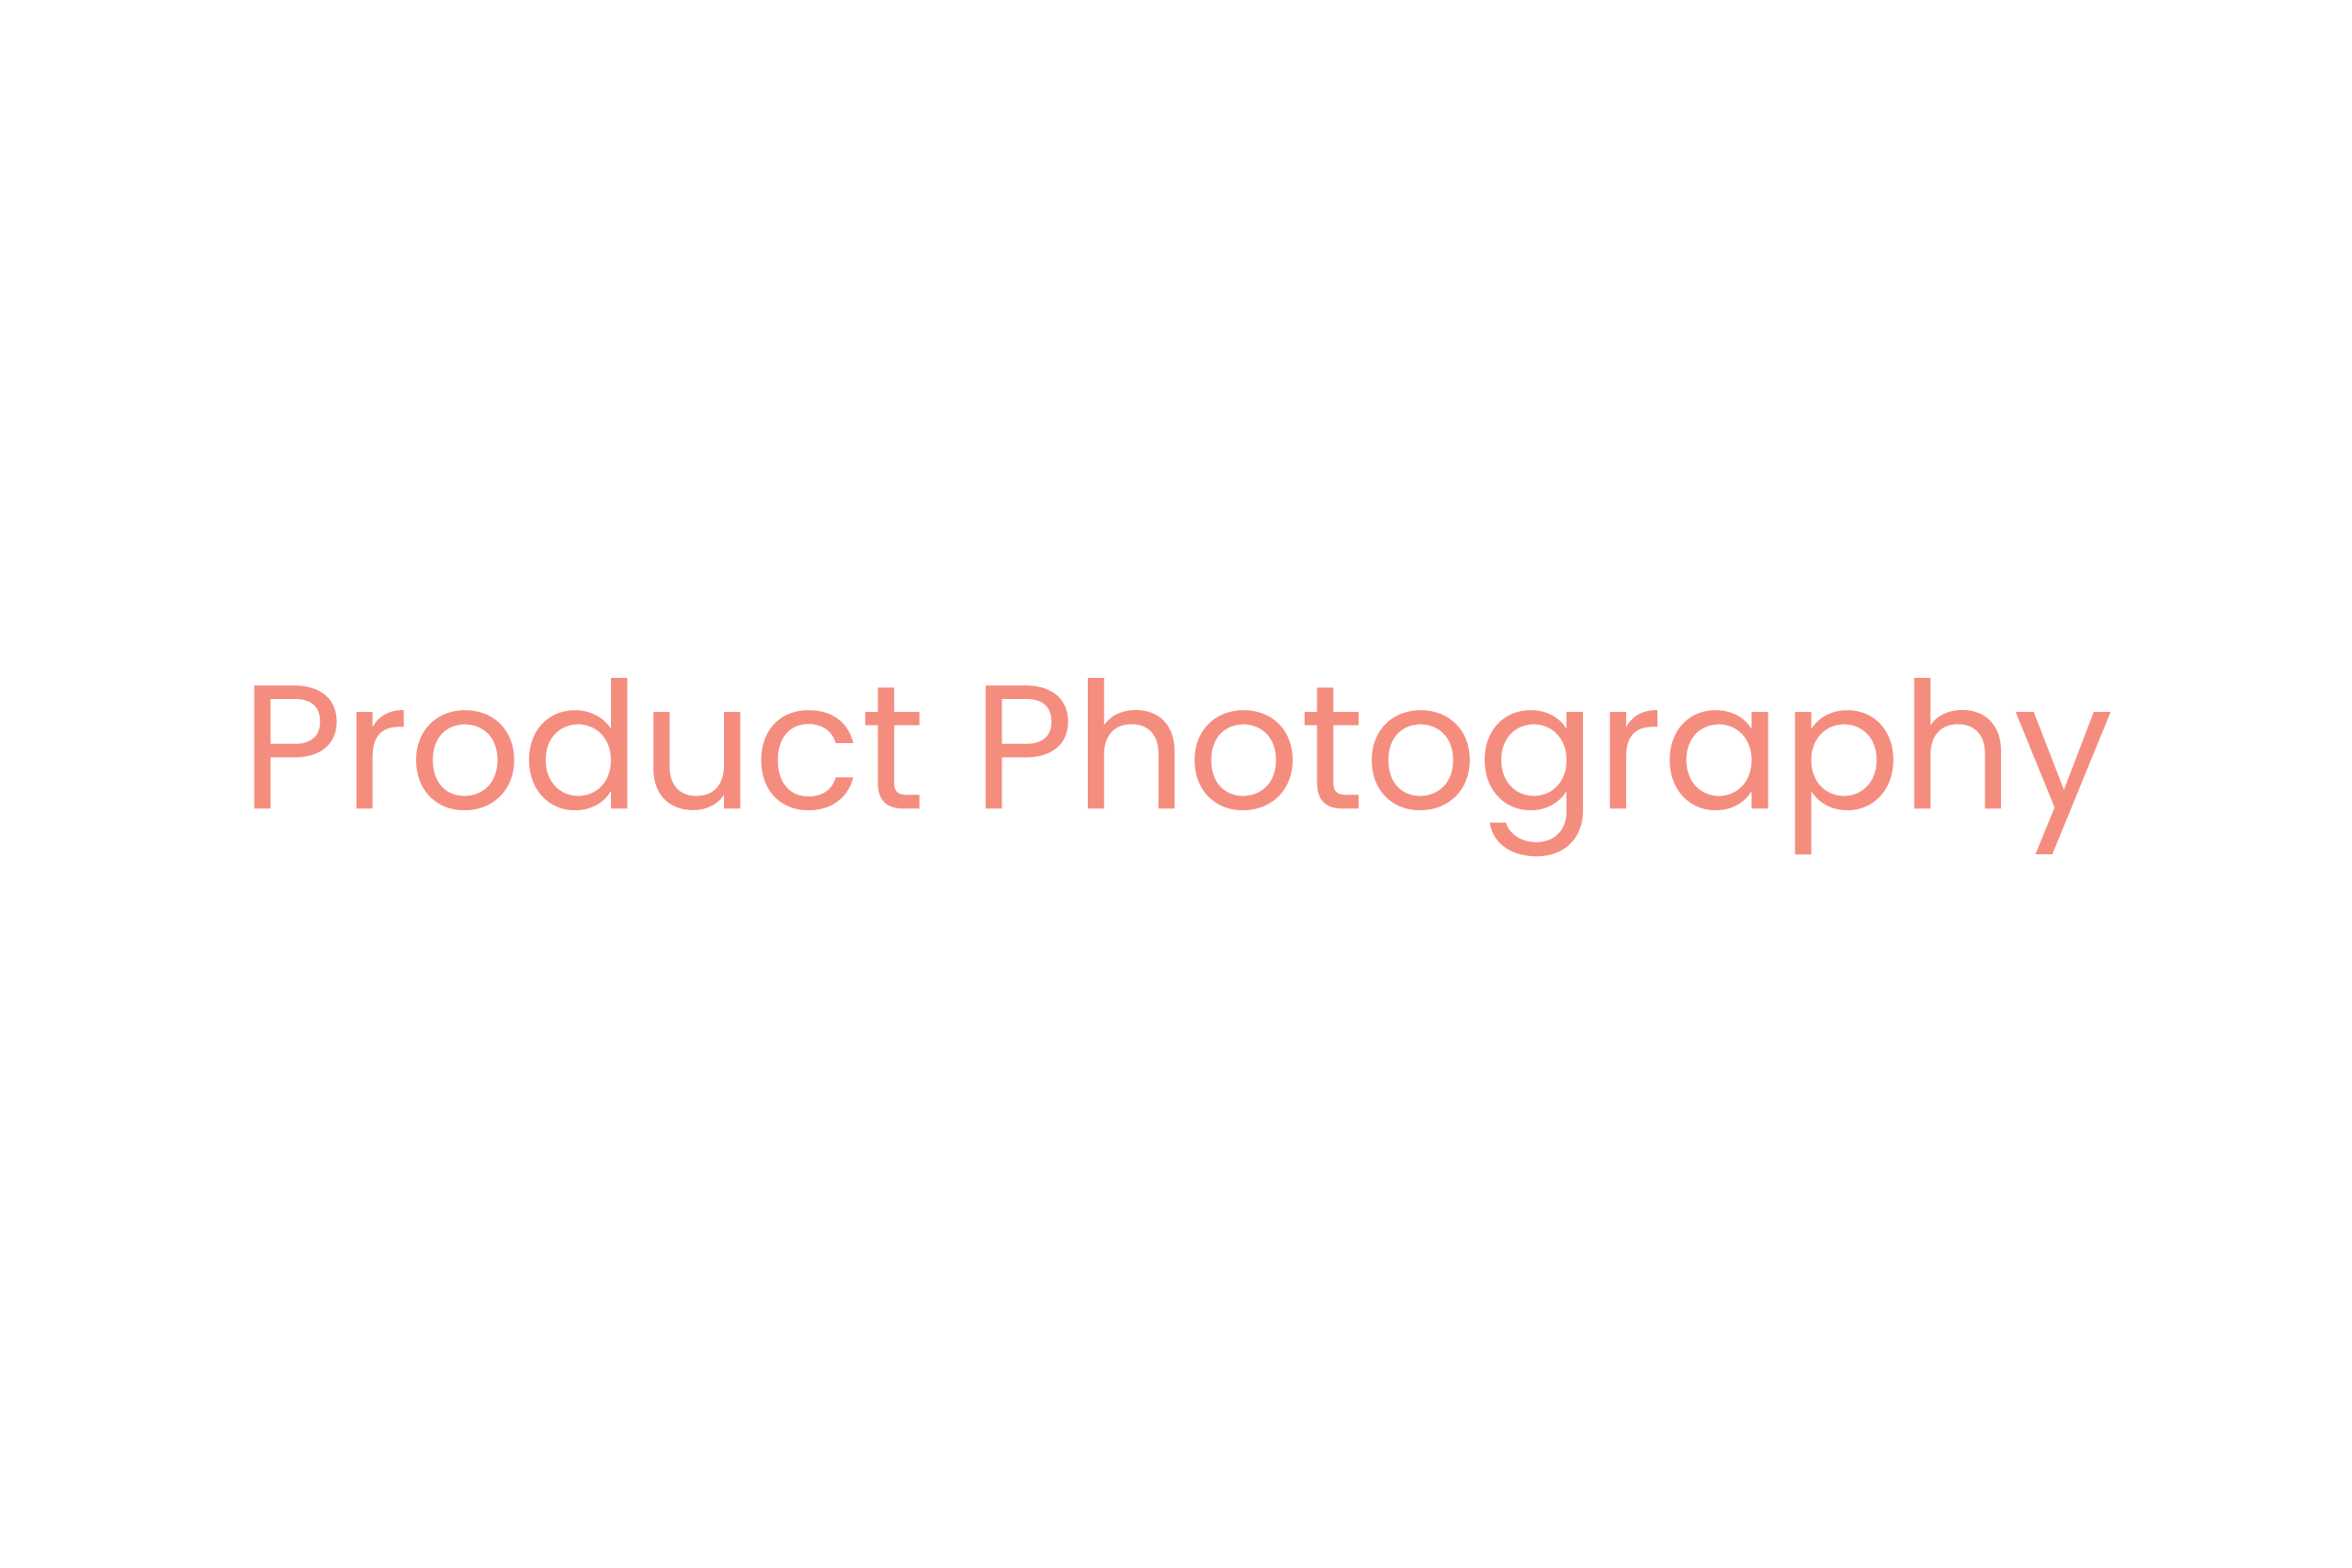 Productpnkfin